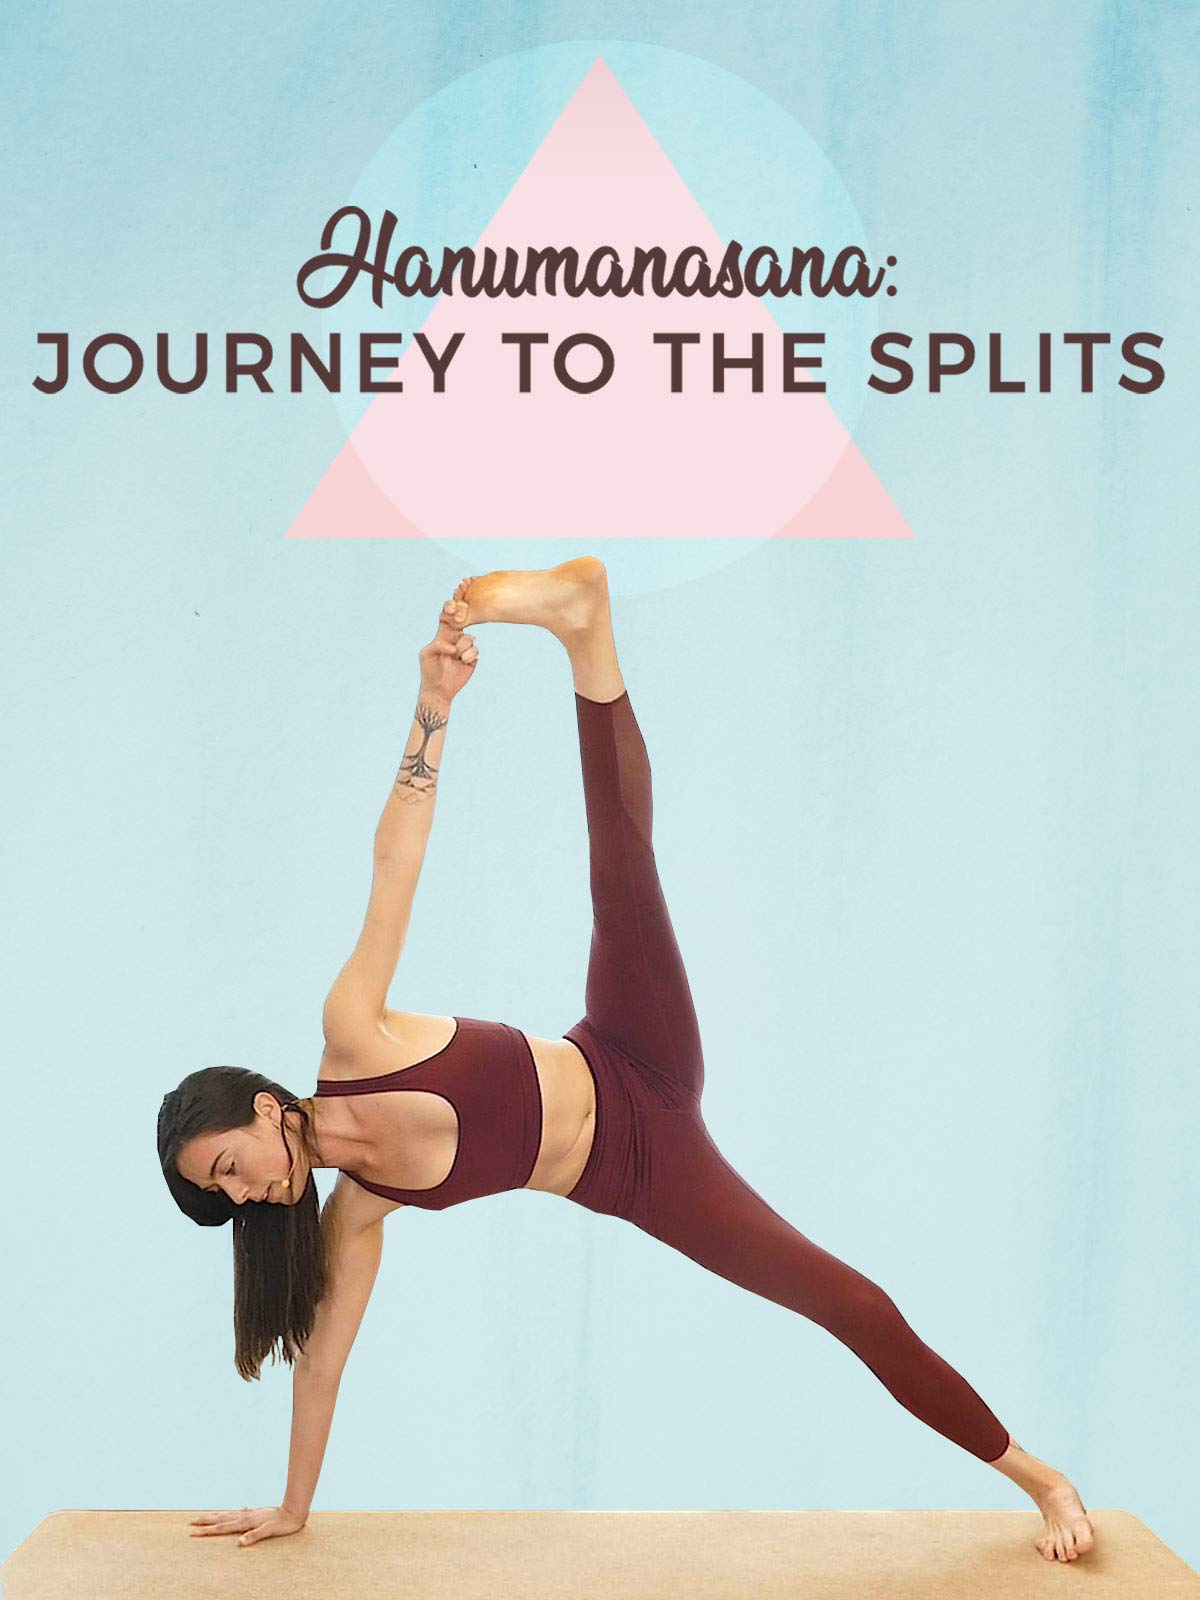 1 Hour Intermediate Flow - Hanumanasana - Journey To The Splits on Amazon Prime Video UK